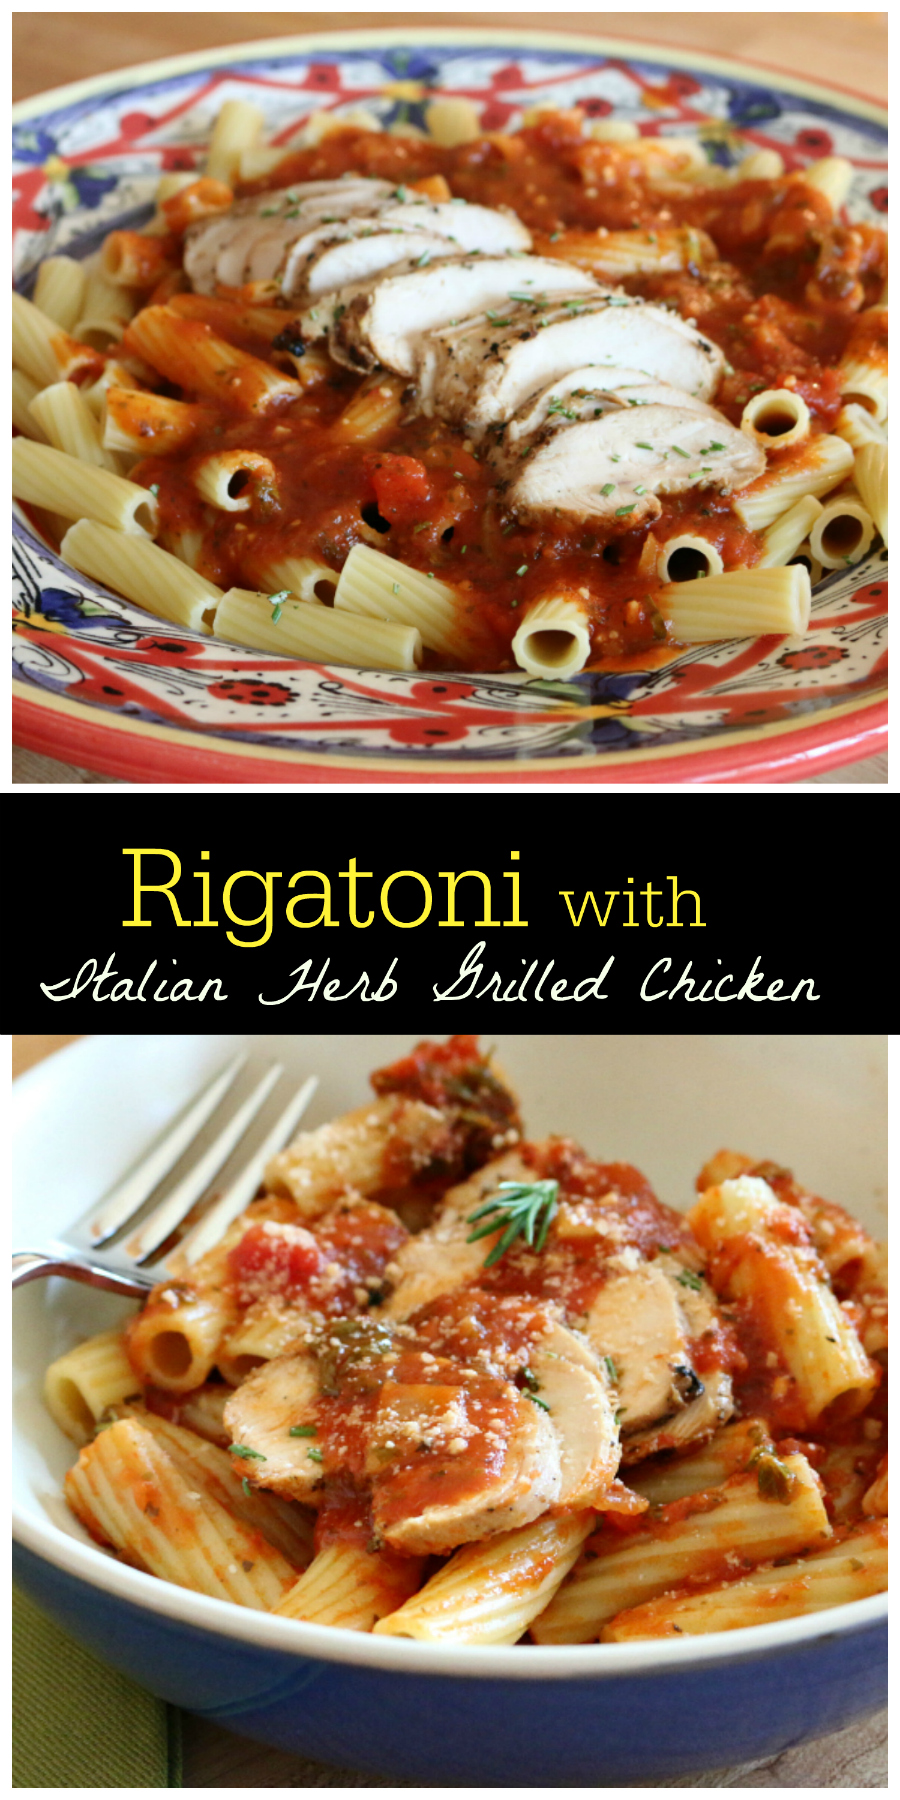 Rigatoni with Italian Herb Grilled Chicken | CeceliasGoodStuff.com | Good Food for Good People